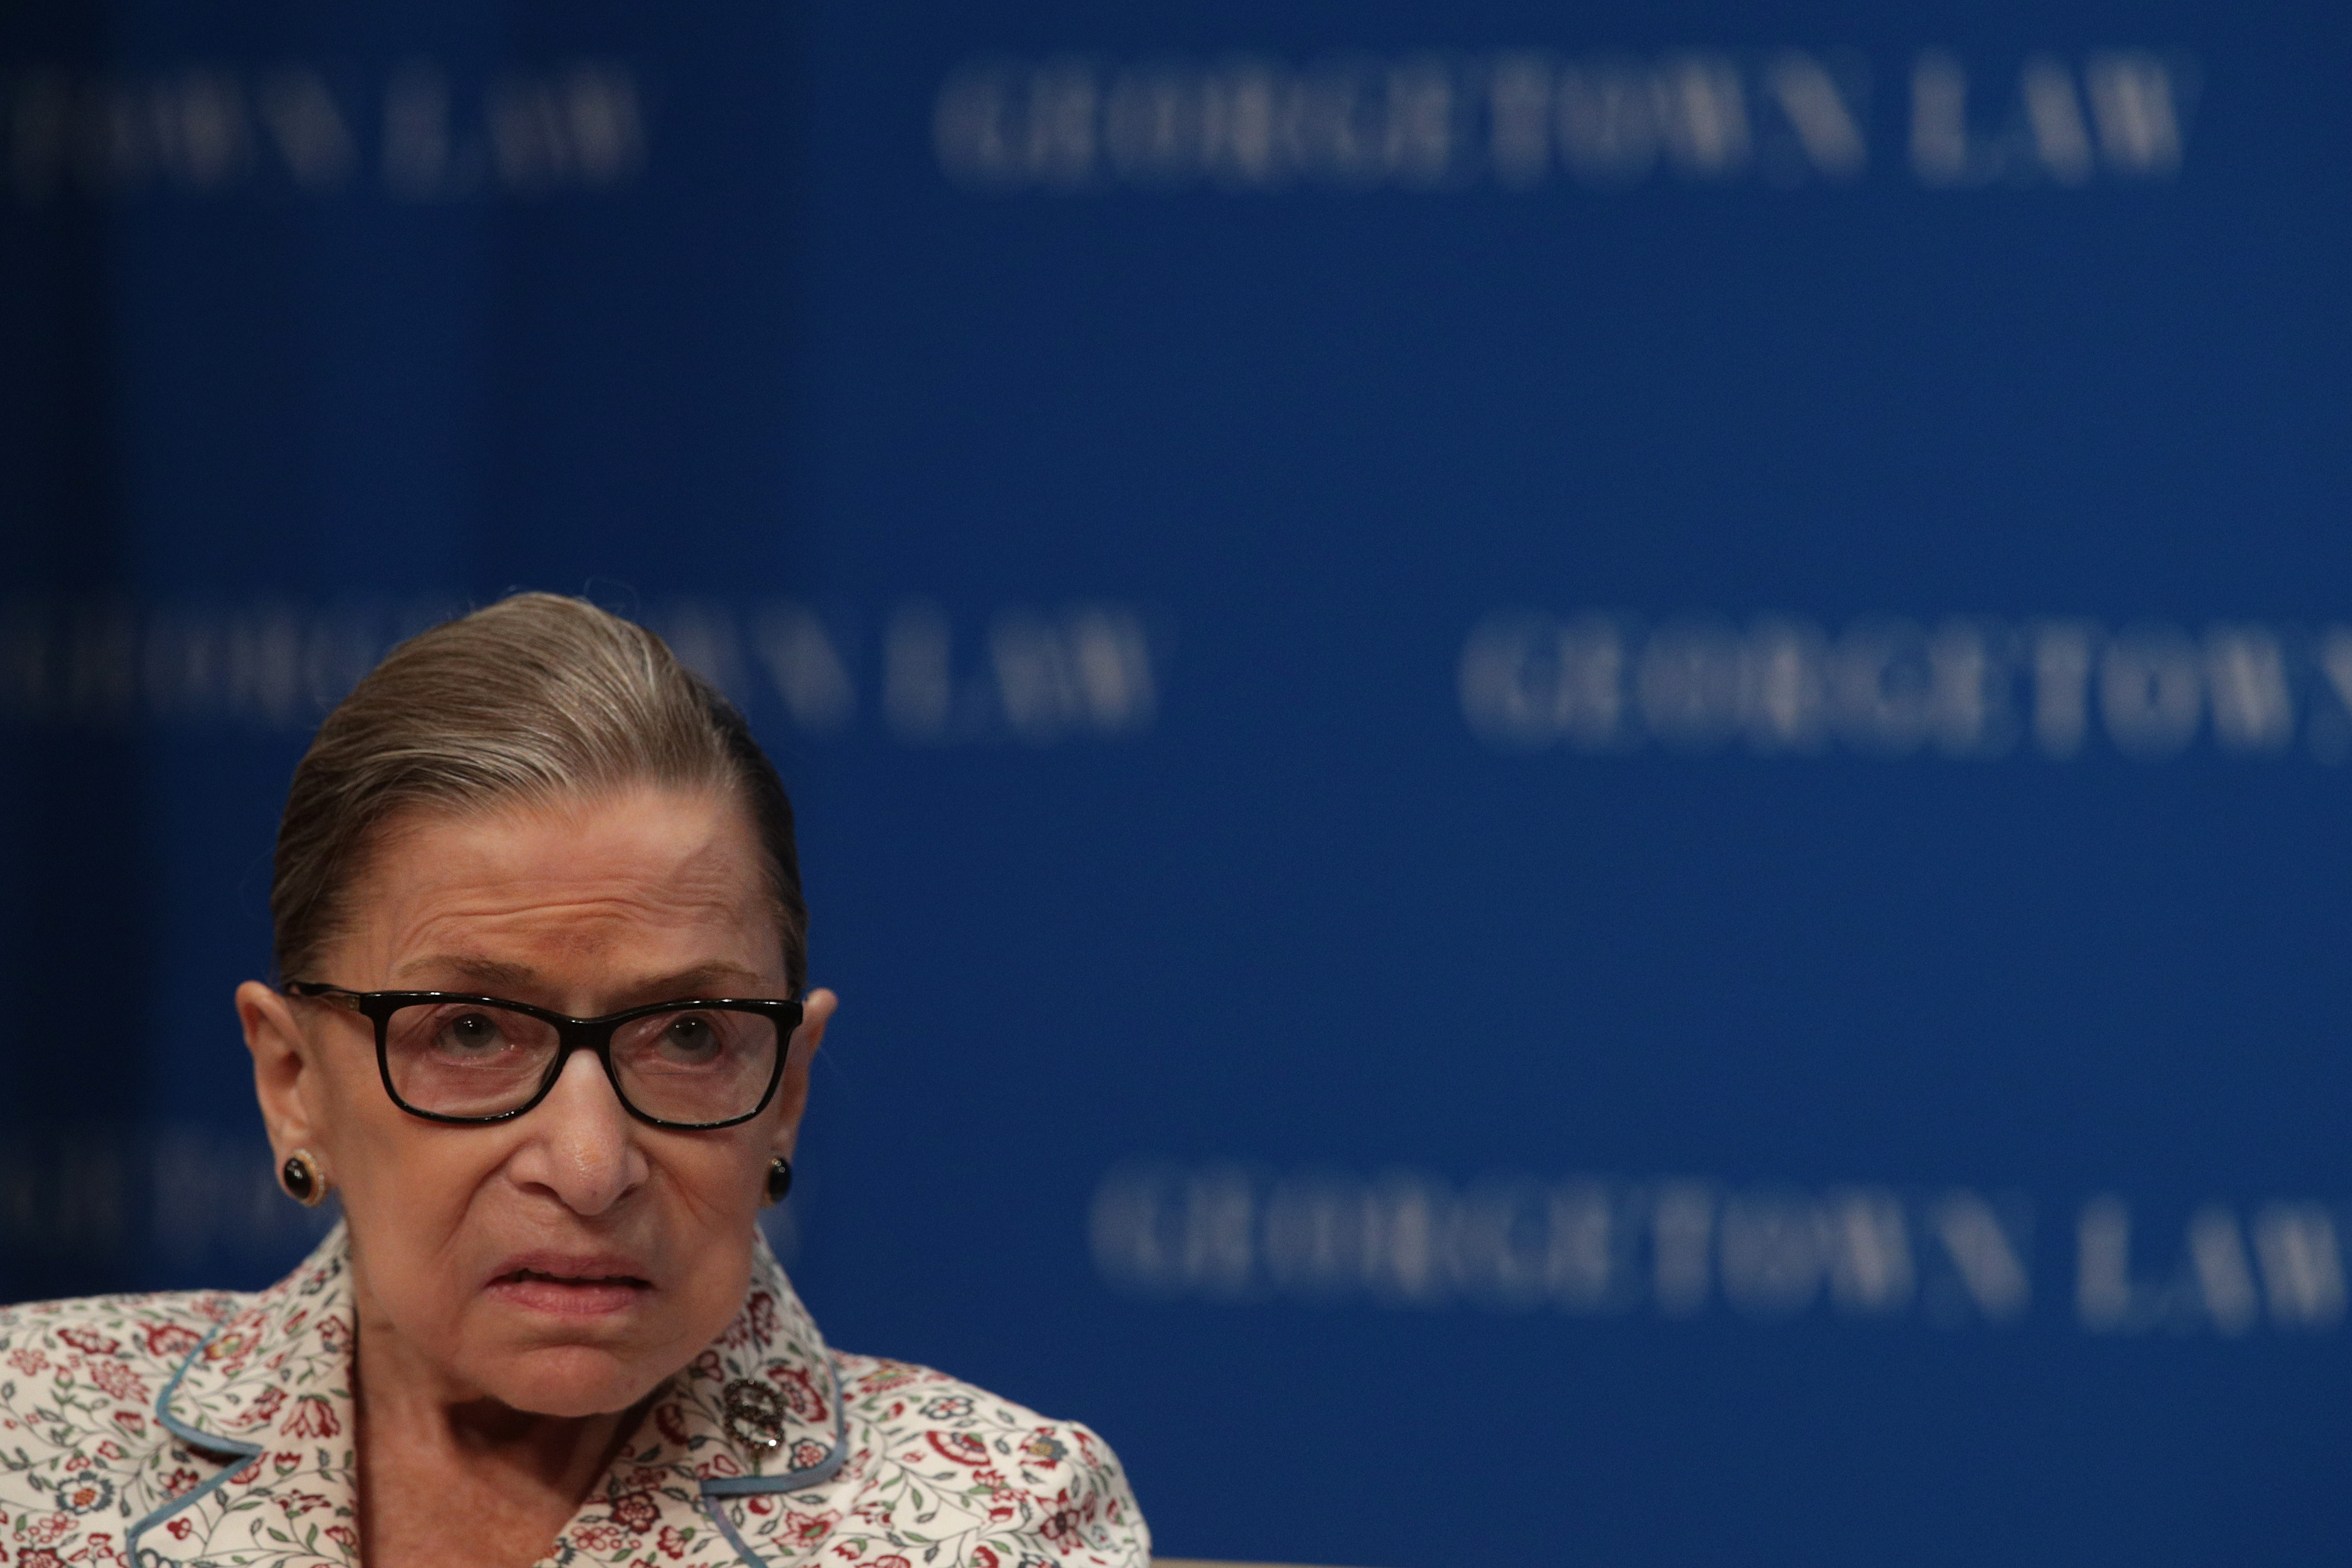 U.S. Supreme Court Justice Ruth Bader Ginsburg participates in a discussion at Georgetown University Law Center July 2, 2019 in Washington, DC.